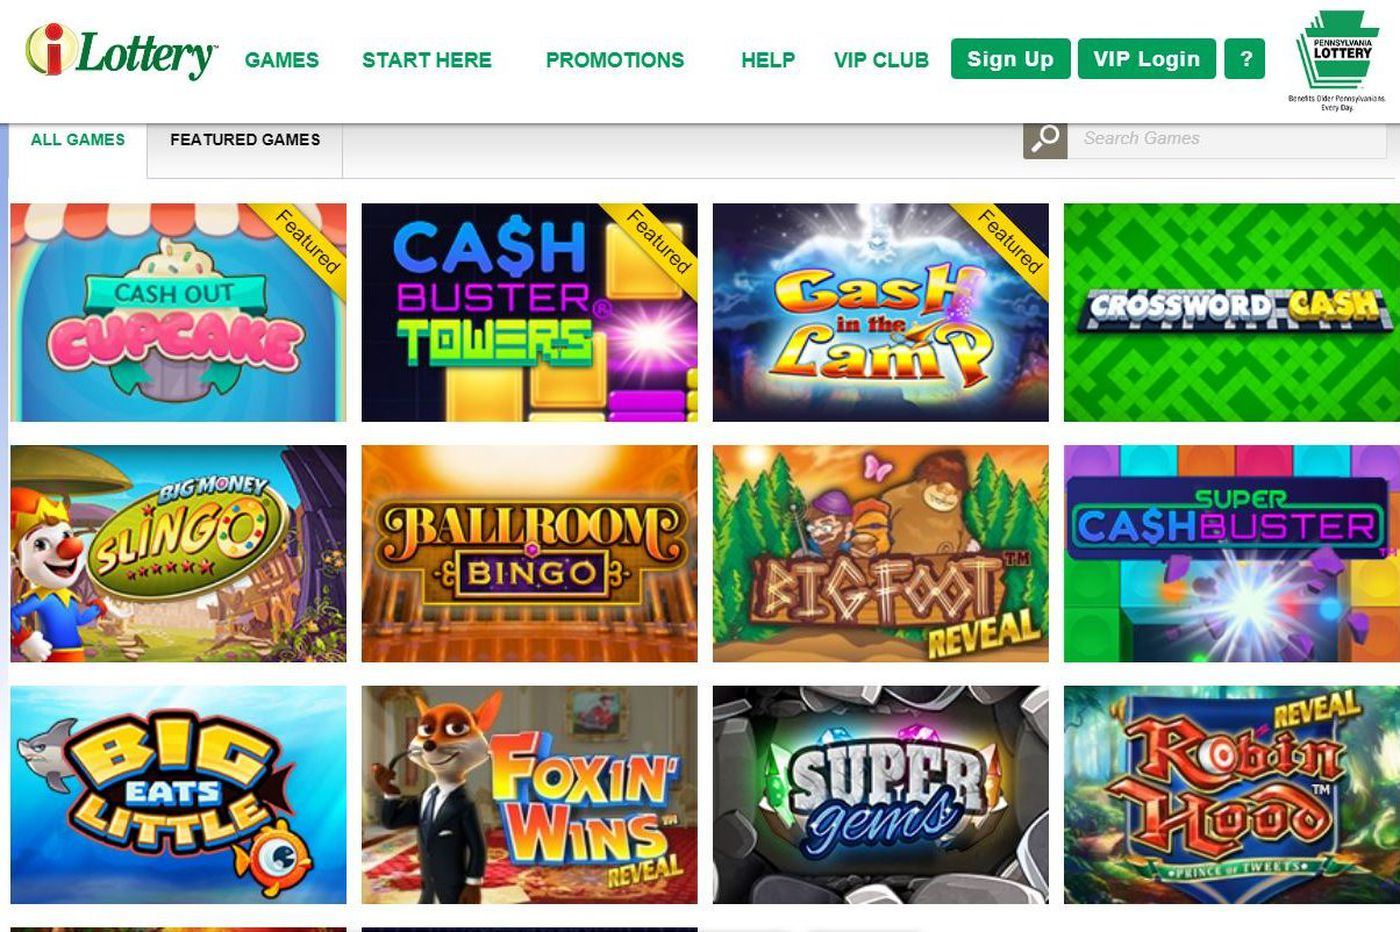 The Pa. Lottery's new iLottery mimics slot games, casinos complain. A big court fight is brewing